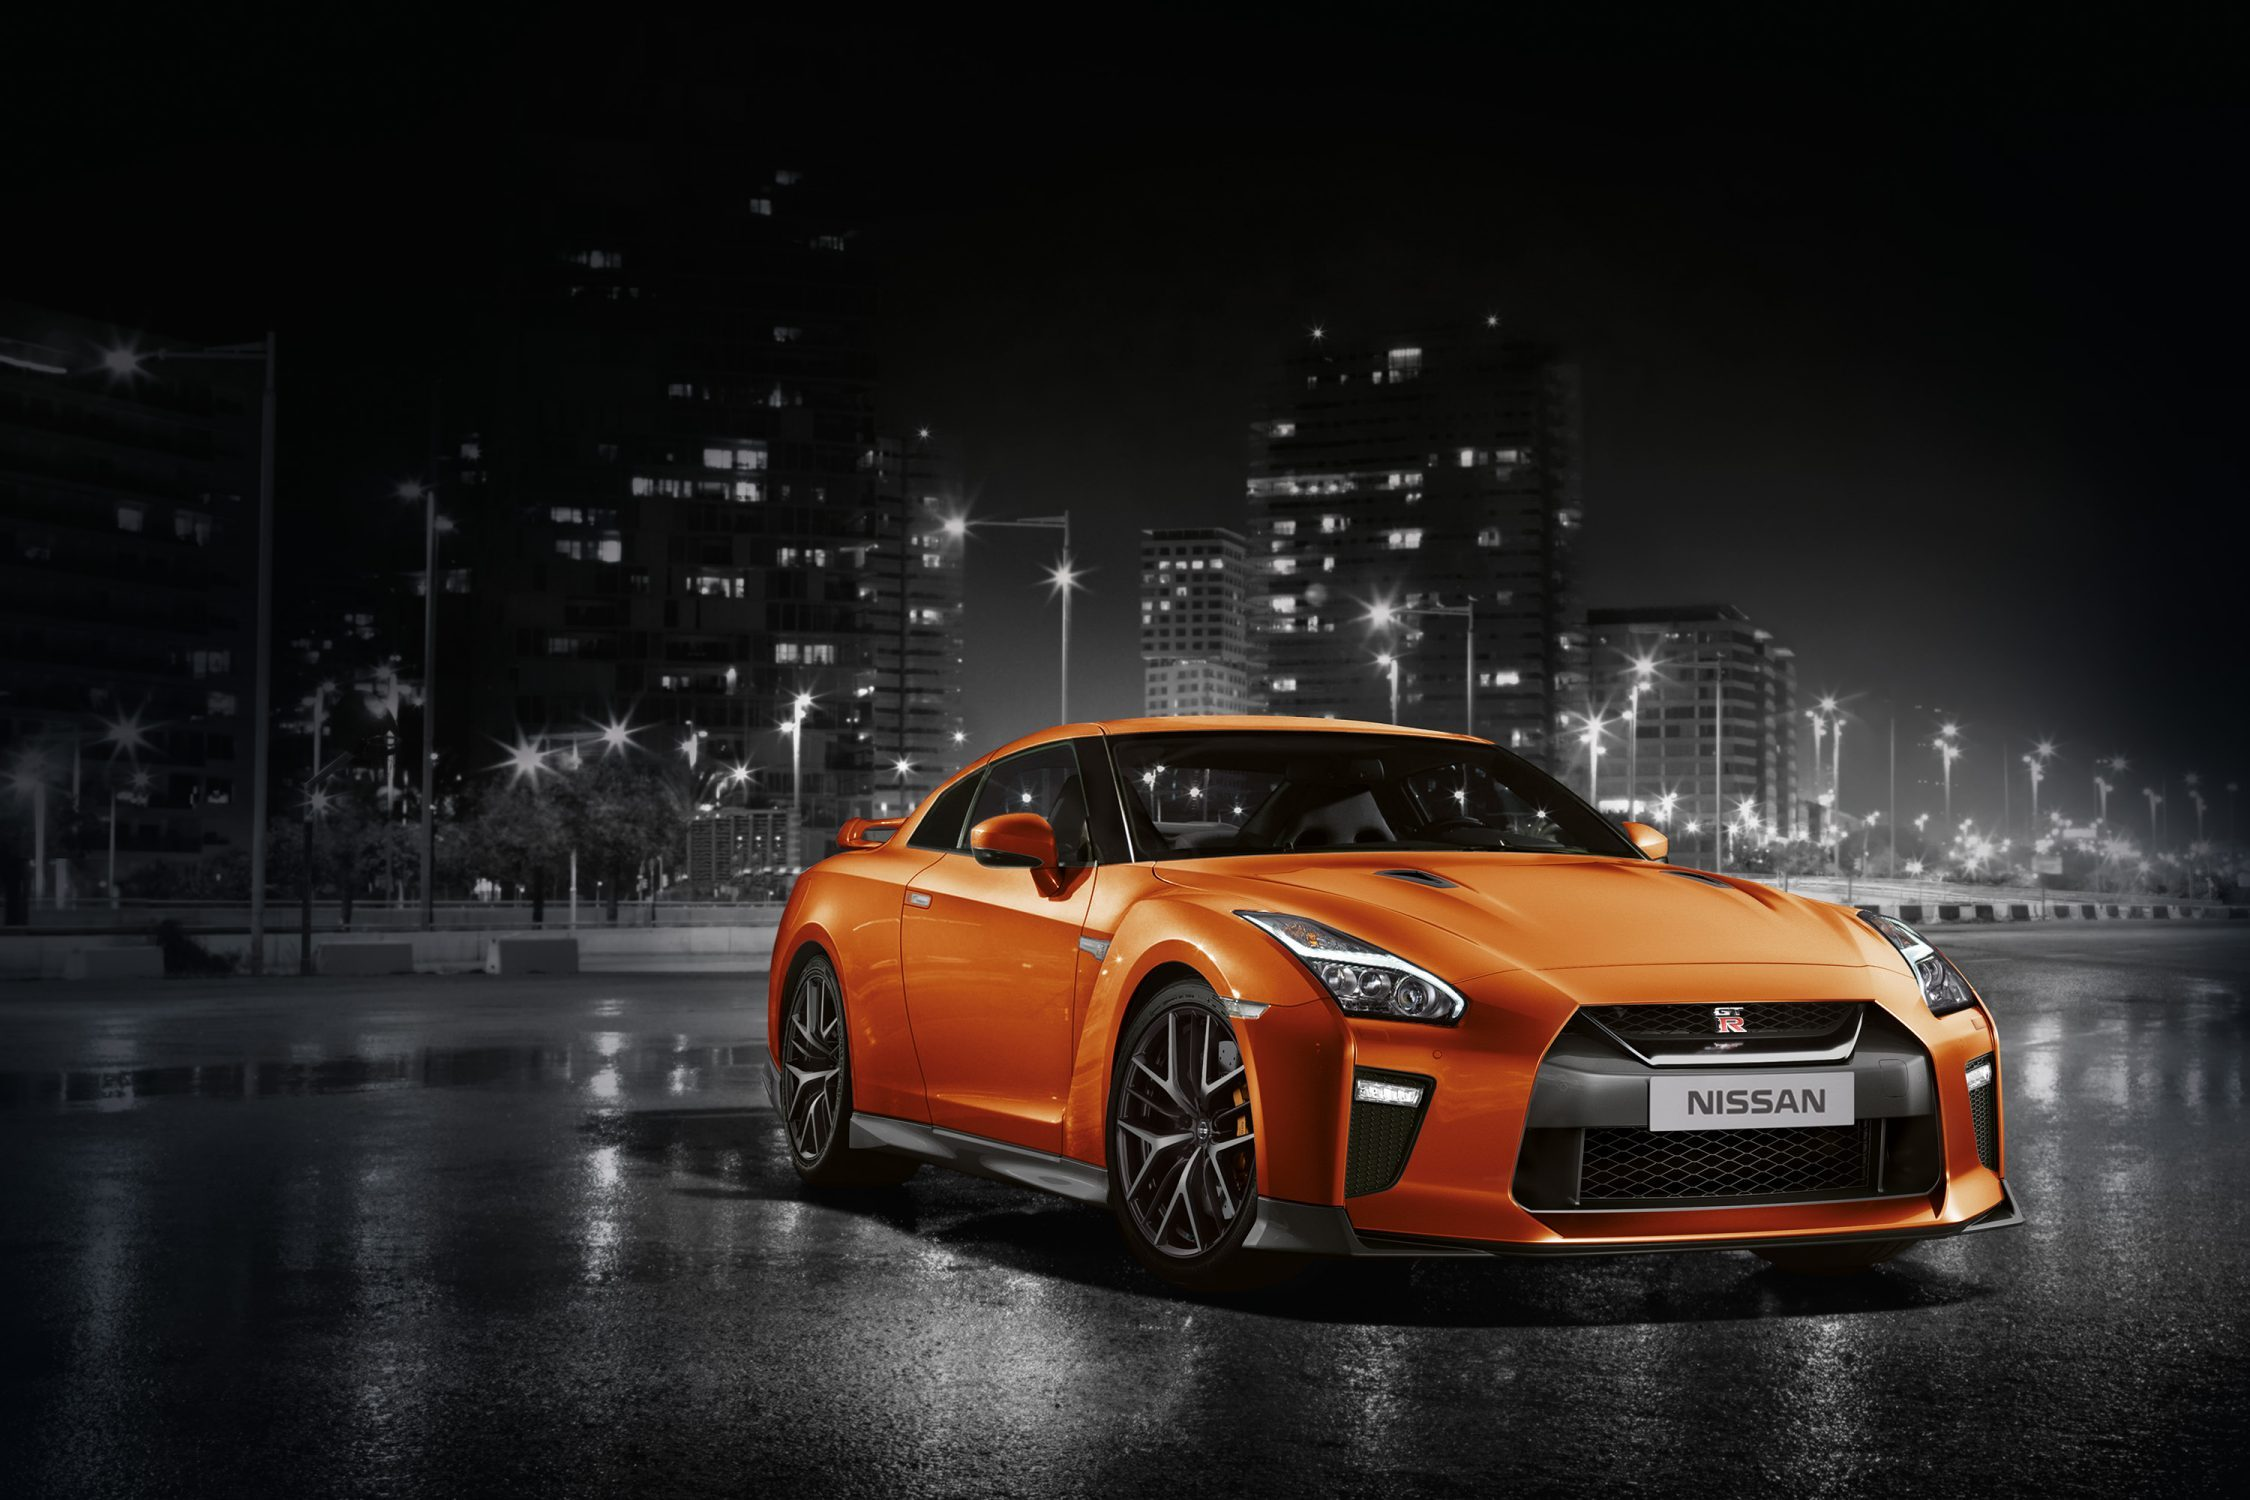 GTR car in city at night